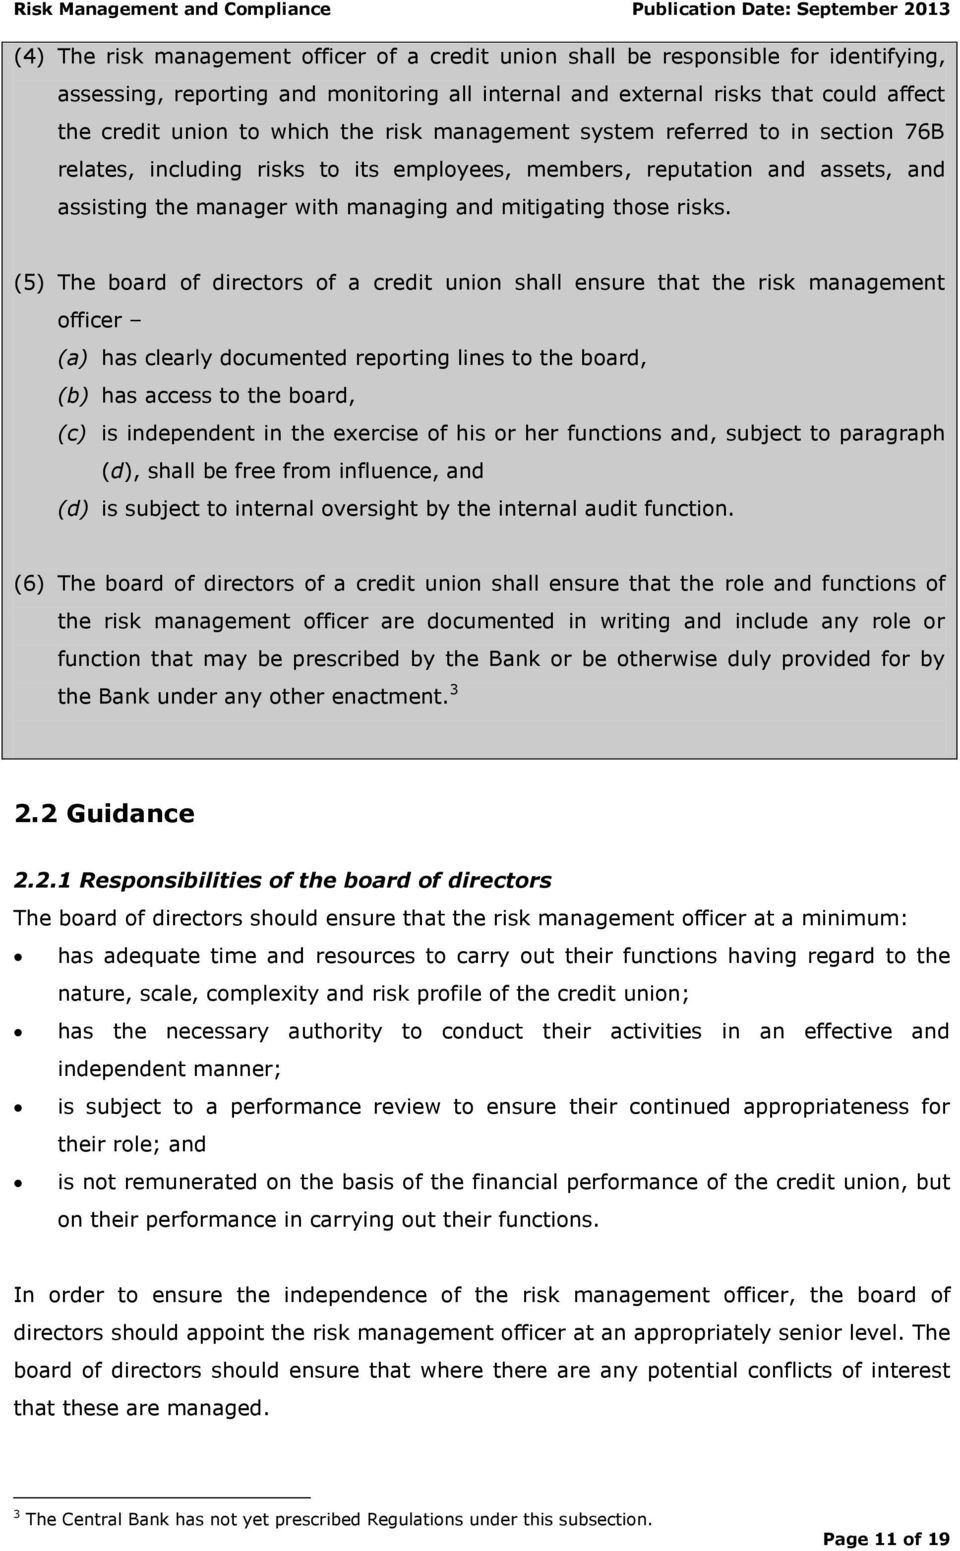 (5) The board of directors of a credit union shall ensure that the risk management officer (a) has clearly documented reporting lines to the board, (b) has access to the board, (c) is independent in